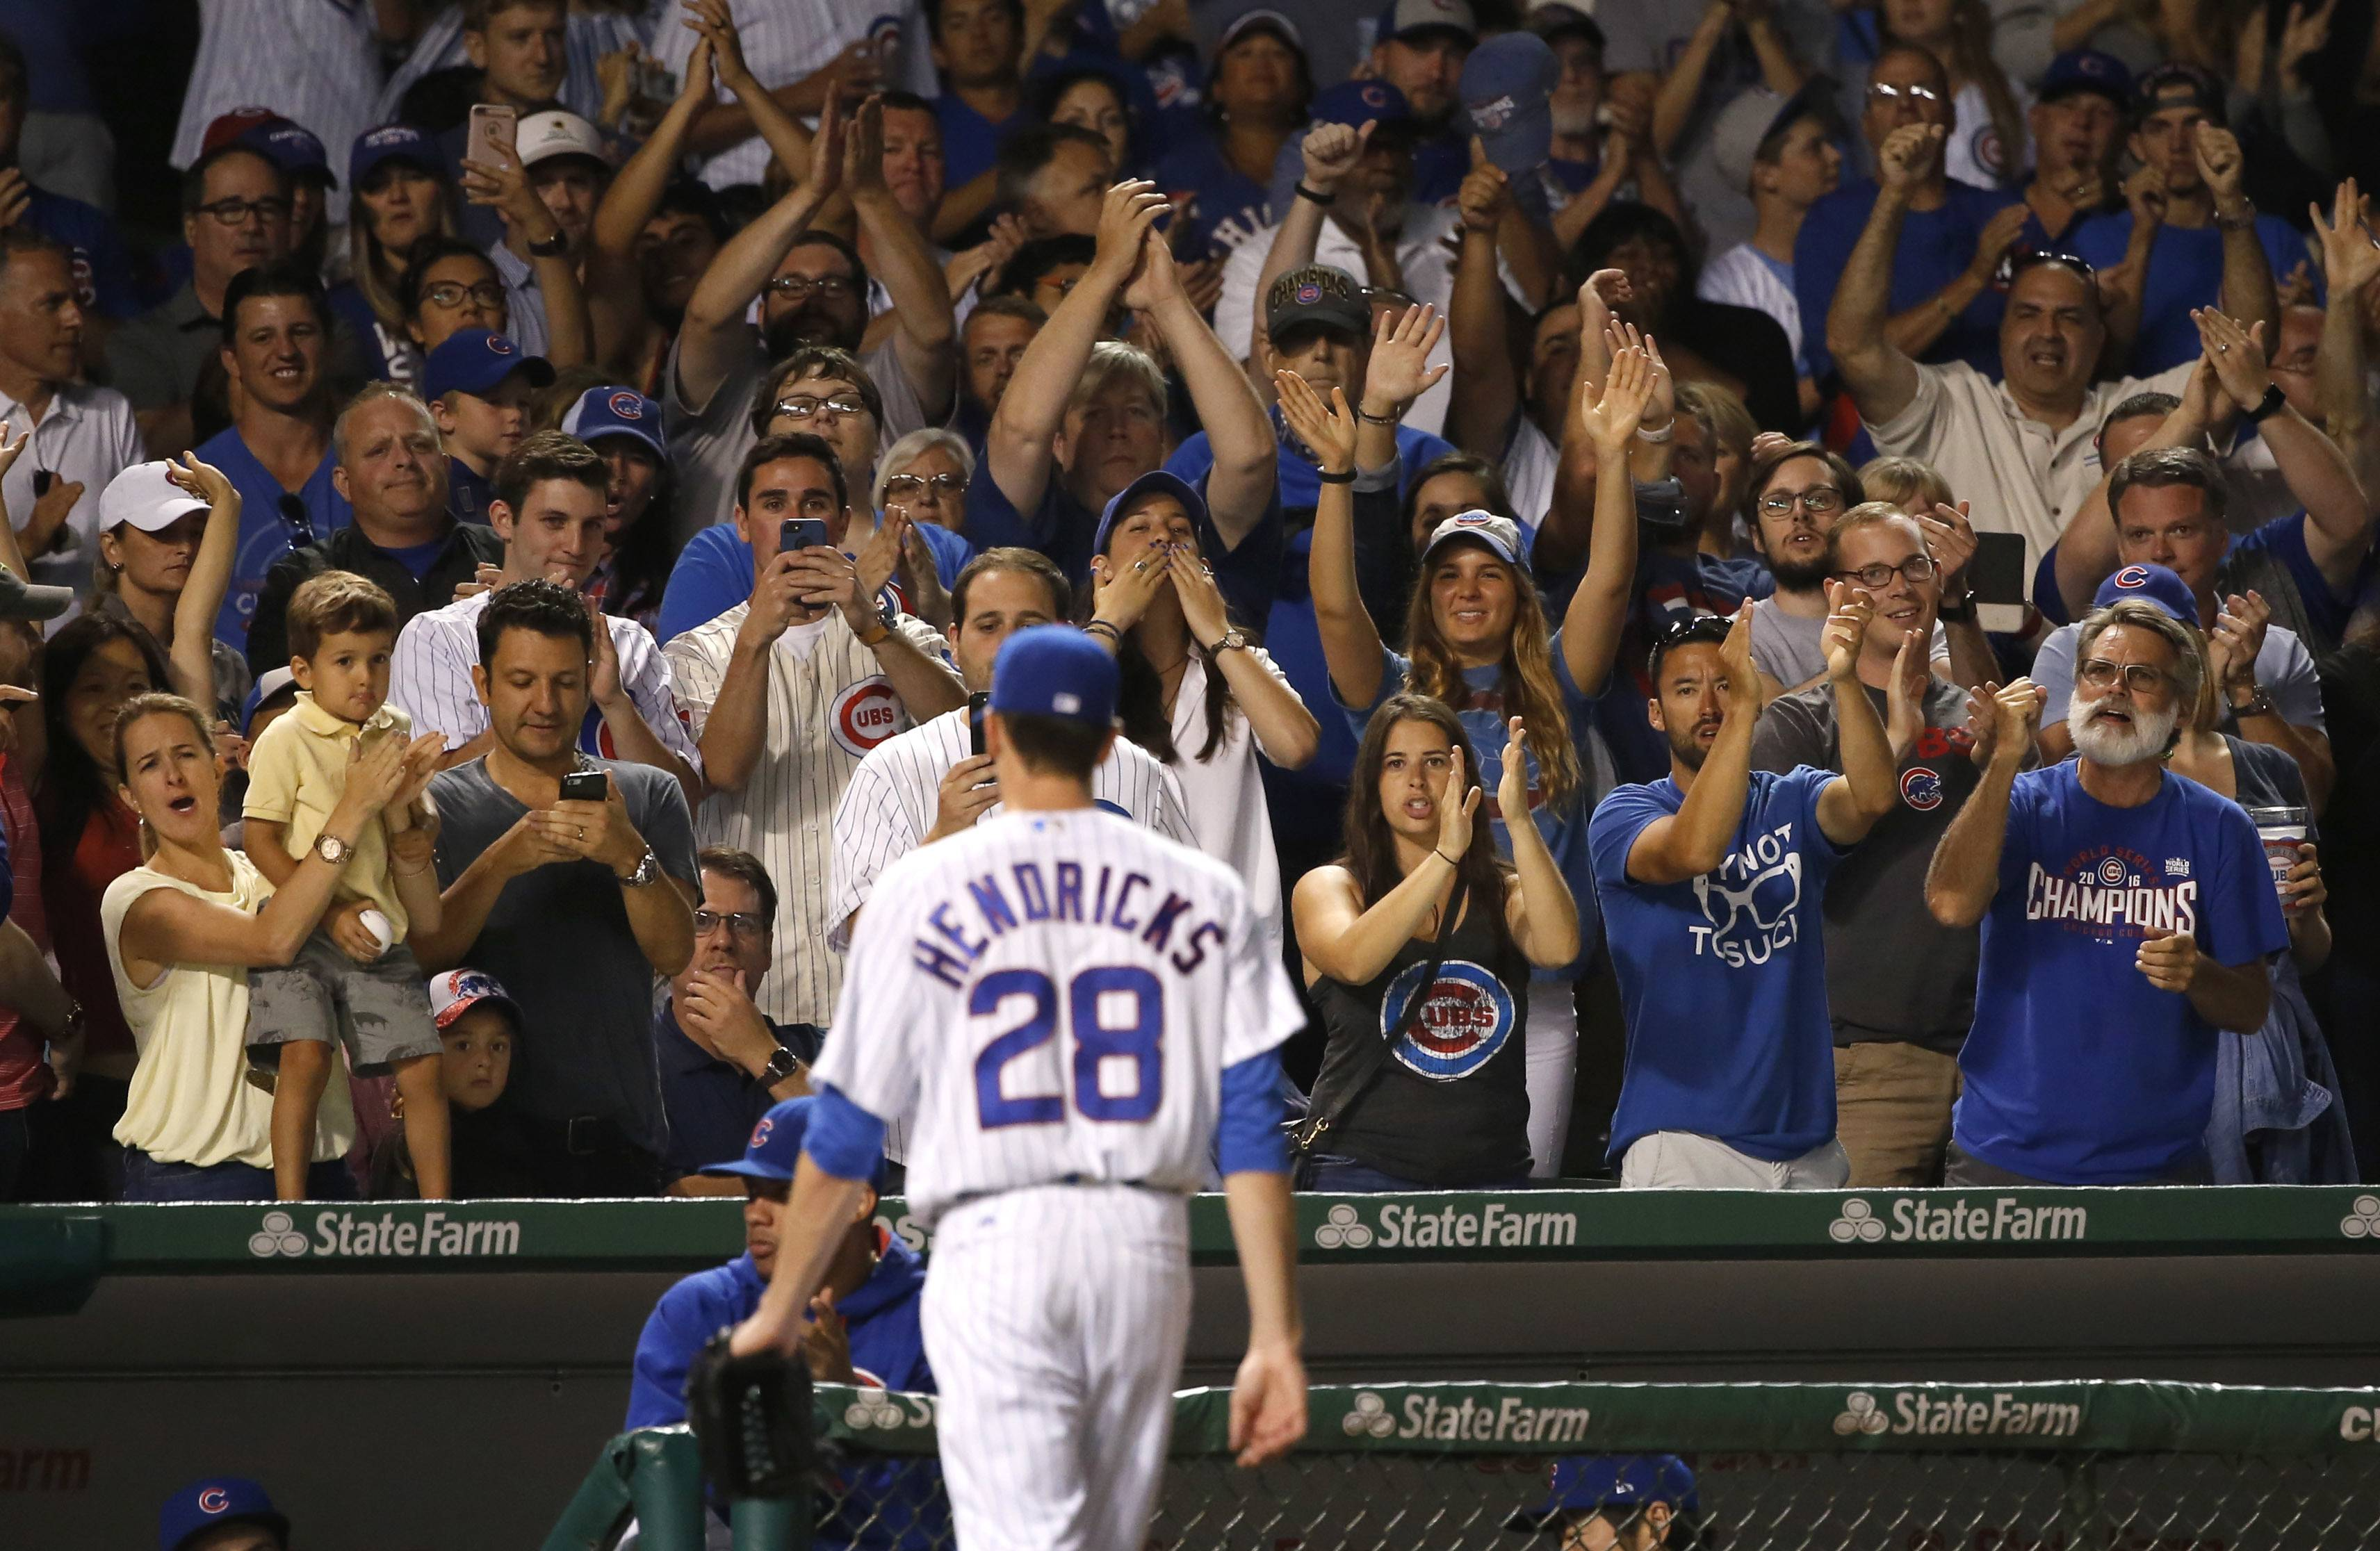 Fans applaud Chicago Cubs starting pitcher Kyle Hendricks as he leaves the baseball game during the seventh inning against the Cincinnati Reds, Tuesday, Aug. 15, 2017, in Chicago. (AP Photo/Charles Rex Arbogast)